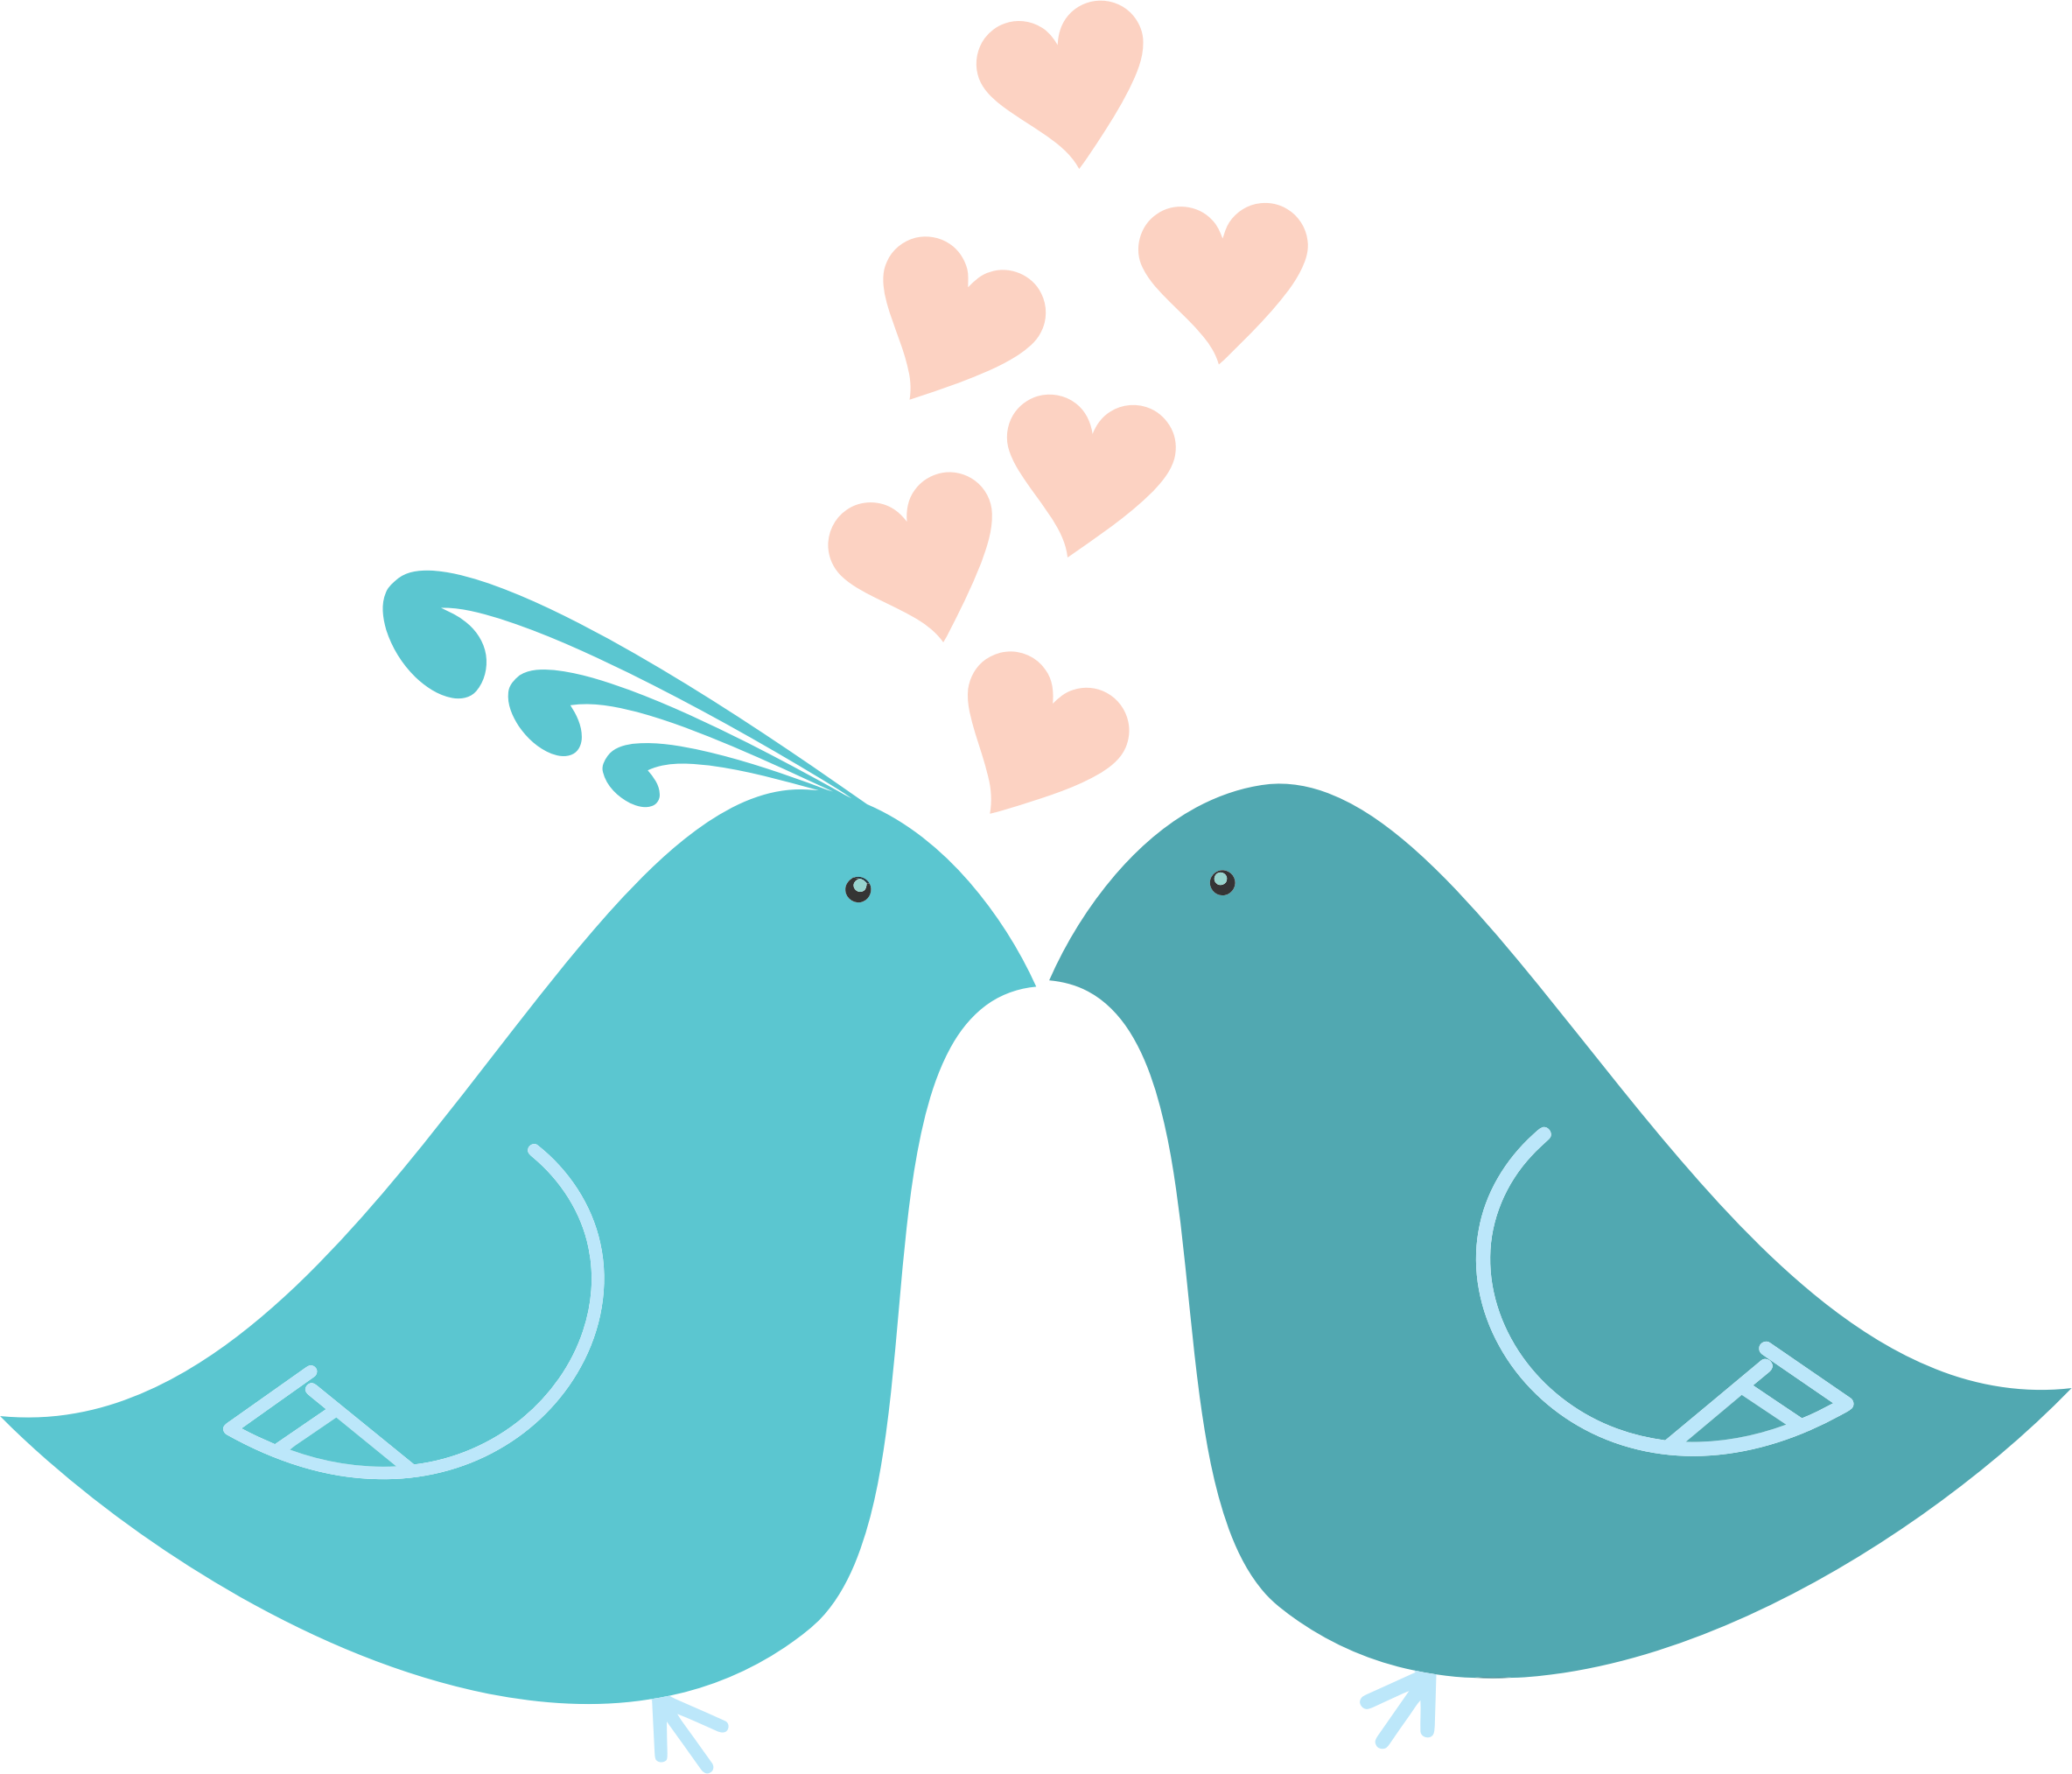 Love birds in a tree clipart clip transparent download 28+ Collection of Teal Love Birds Clipart | High quality, free ... clip transparent download